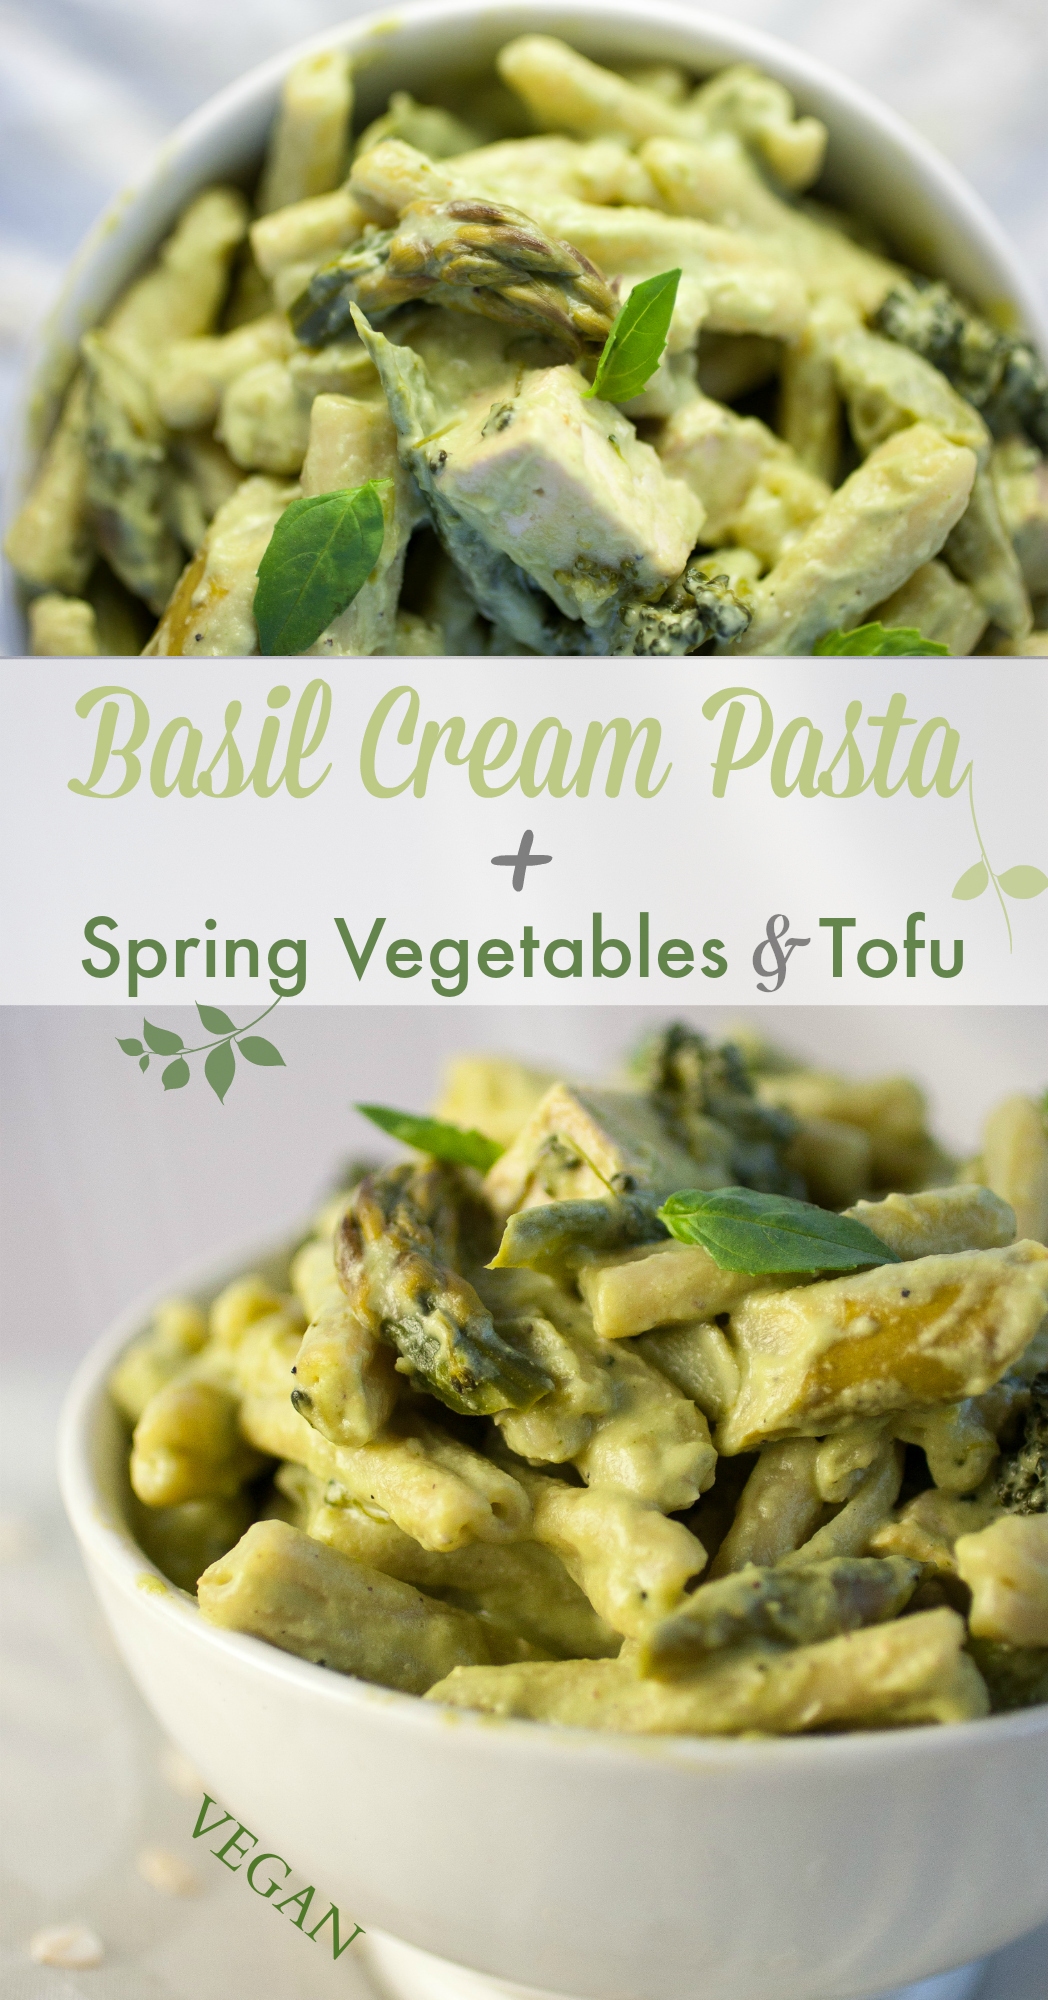 Basil Cream Pasta + Spring Vegetables & Tofu — Produce On Parade